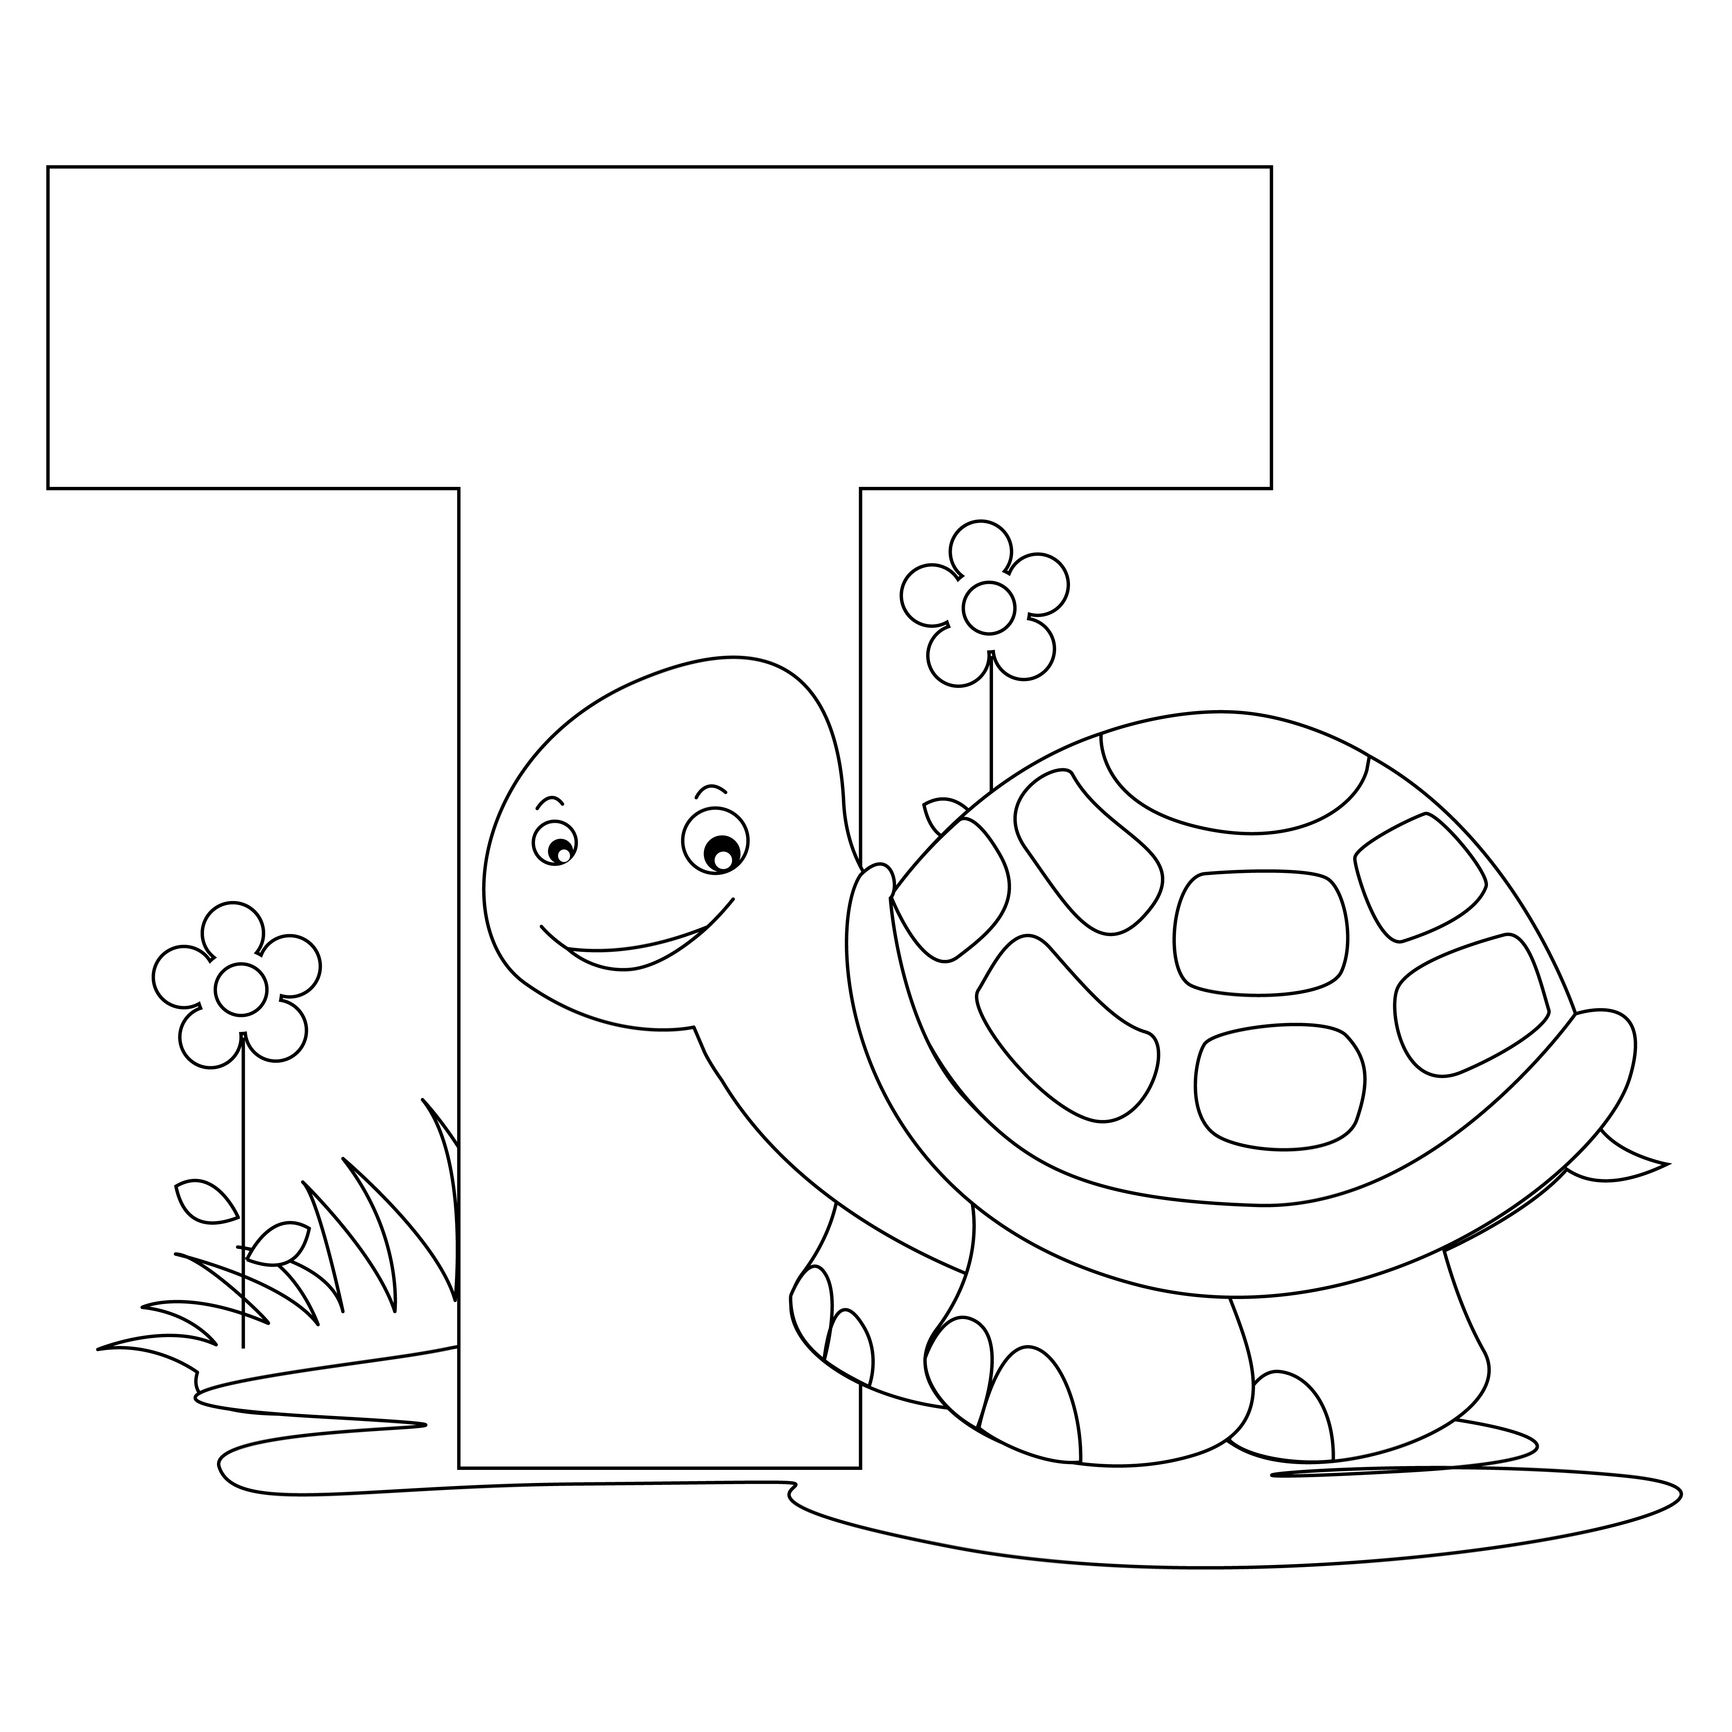 Animal Alphabet Letter T Is For Turtle